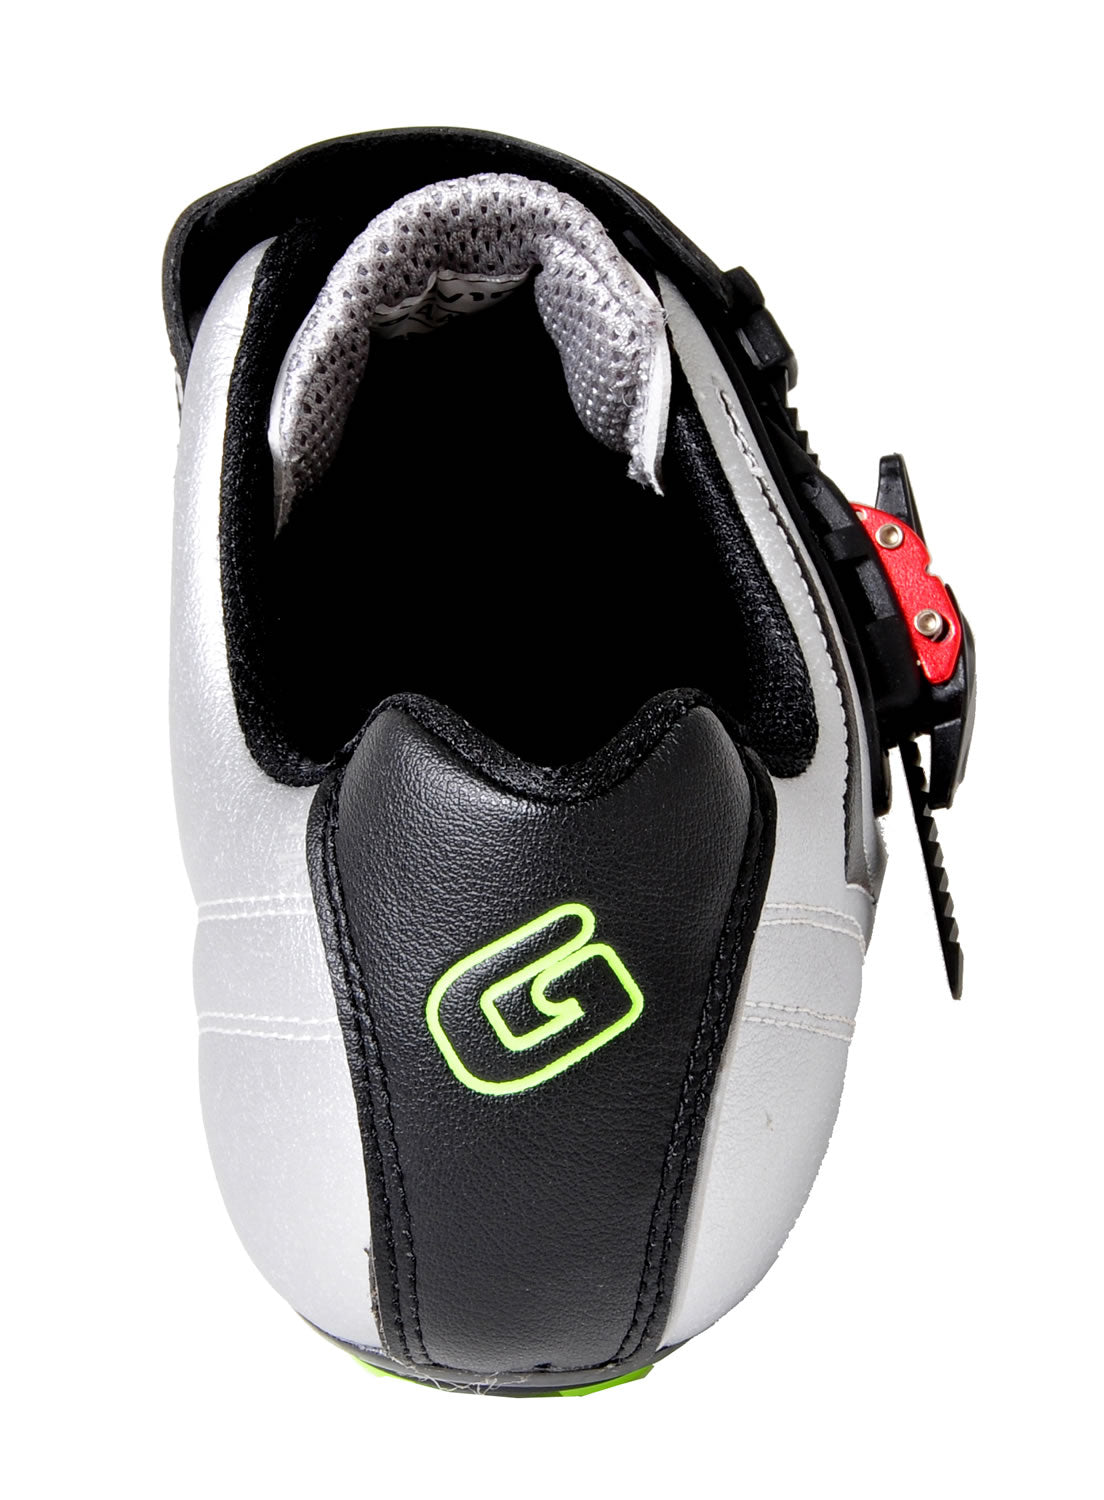 products/525-CARBON-SHOE__04_jpg.jpg